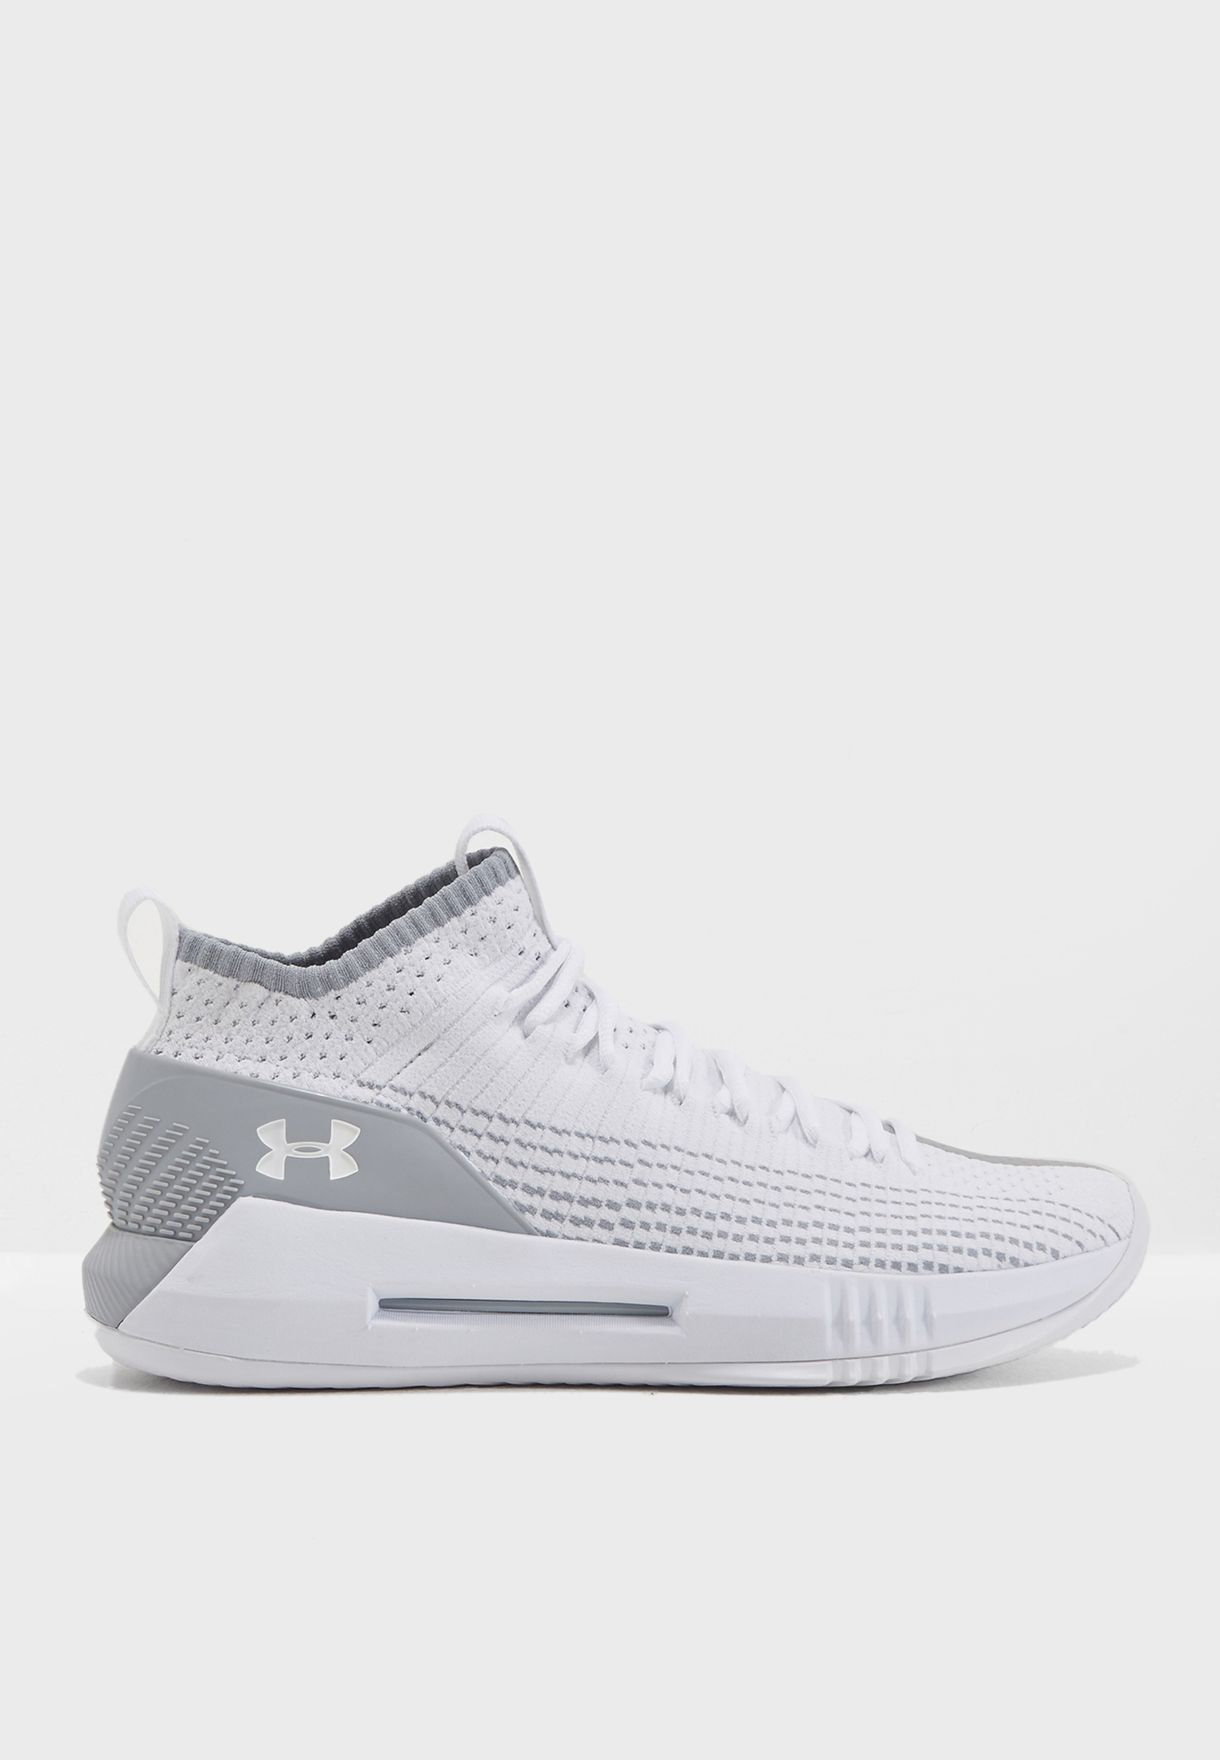 Athletic Shoes Men's Shoes Under Armour Mens Heat Seeker Basketball Shoes Grey Sports Breathable